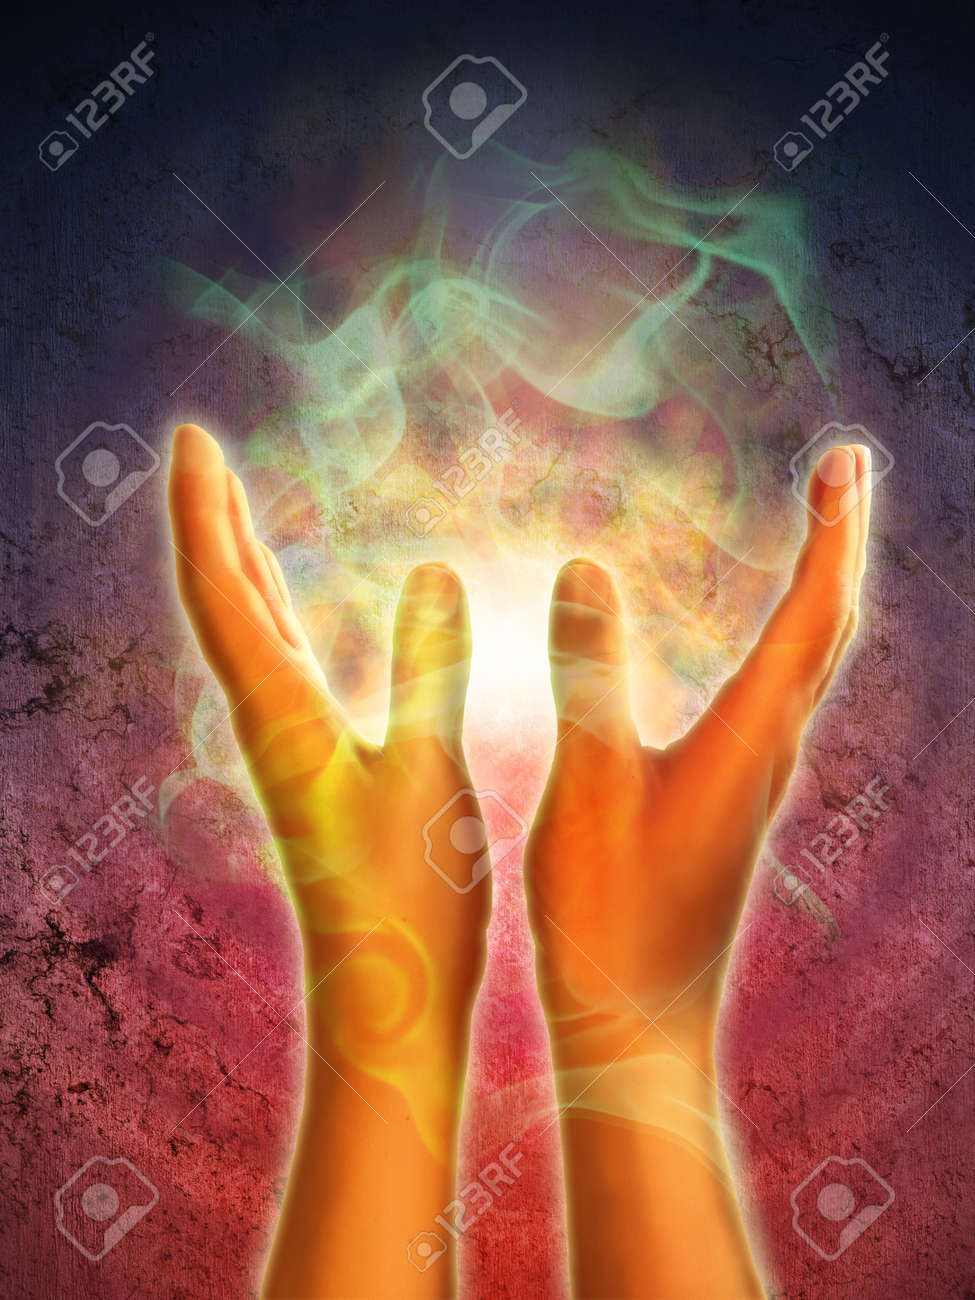 Mystical energy generating from open hands. Digital illustration. Stock Illustration - 6818852